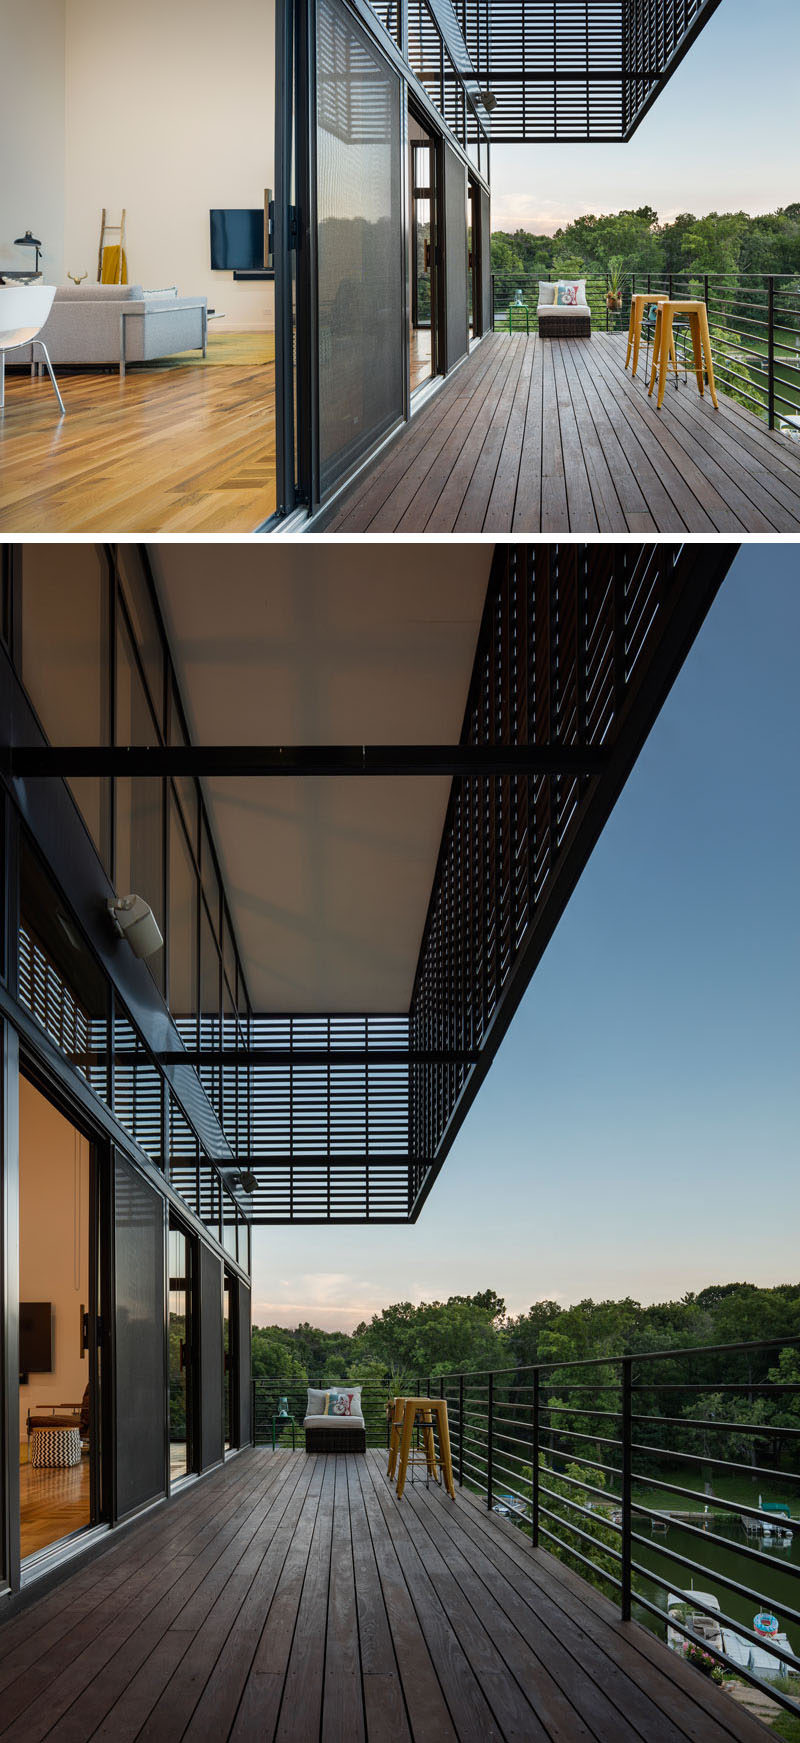 This modern home has a large balcony that overlooks the lake.